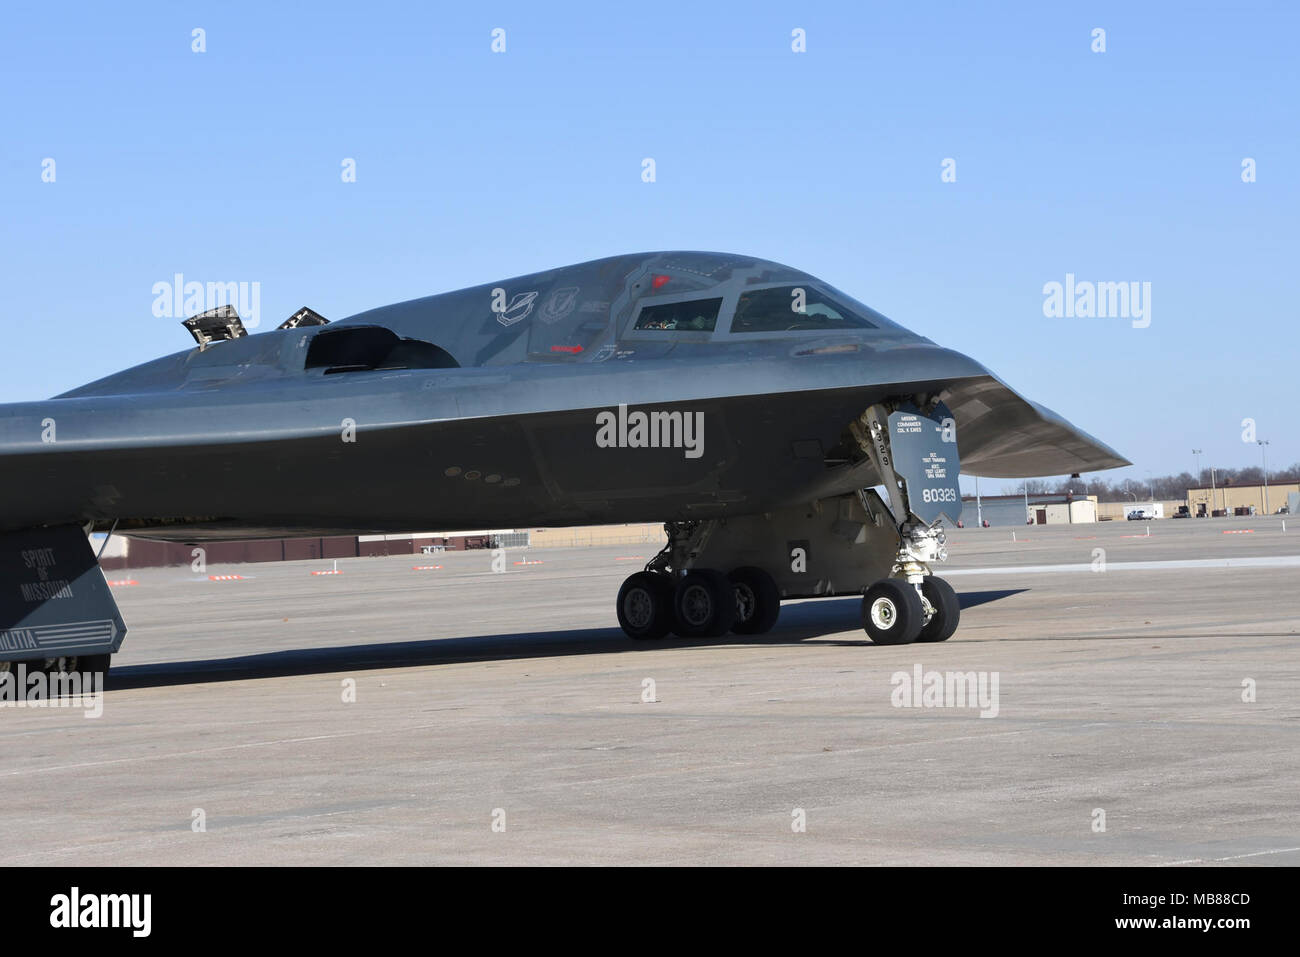 The Spirit of Missouri, the B-2 Flagship of the Missouri Air National Guard's 131st Bomb Wing, returns from a recent training mission, at Whiteman Air Force Base, Missouri, Feb 25, 2018. (U.S. Air National Guard Stock Photo